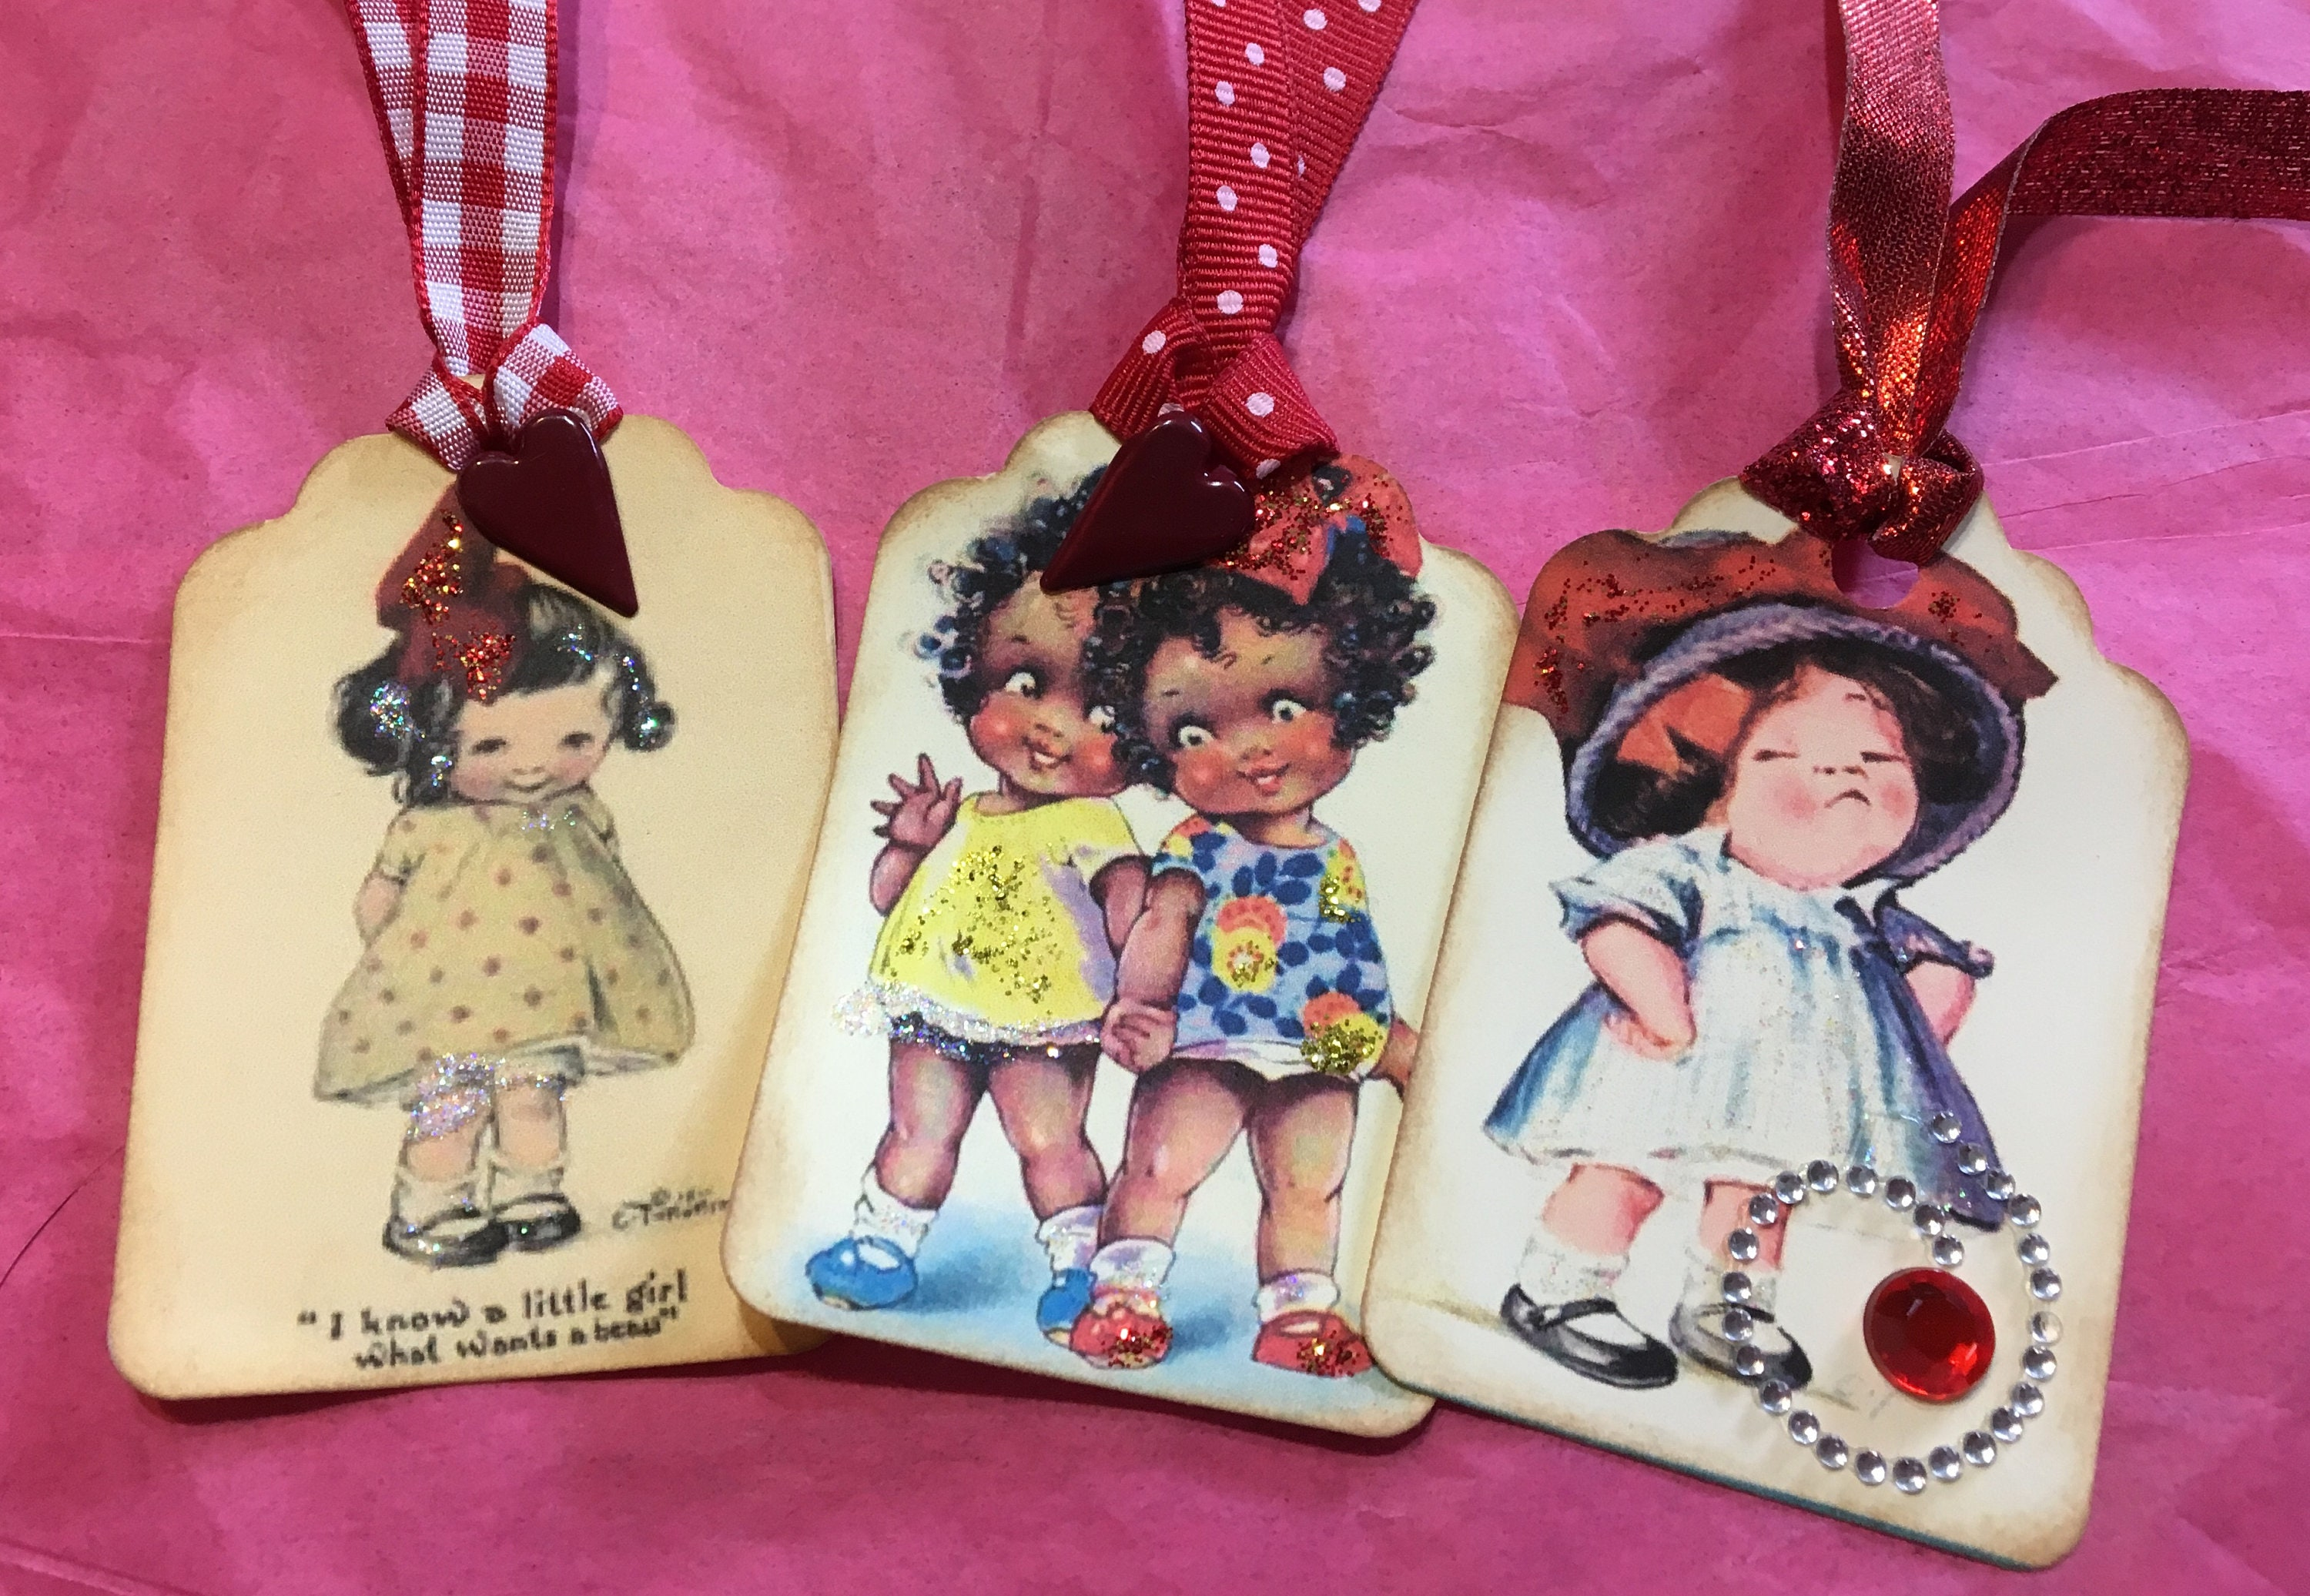 Vintage Card Images Of Cute Little Girls With Big Red Bows Etsy